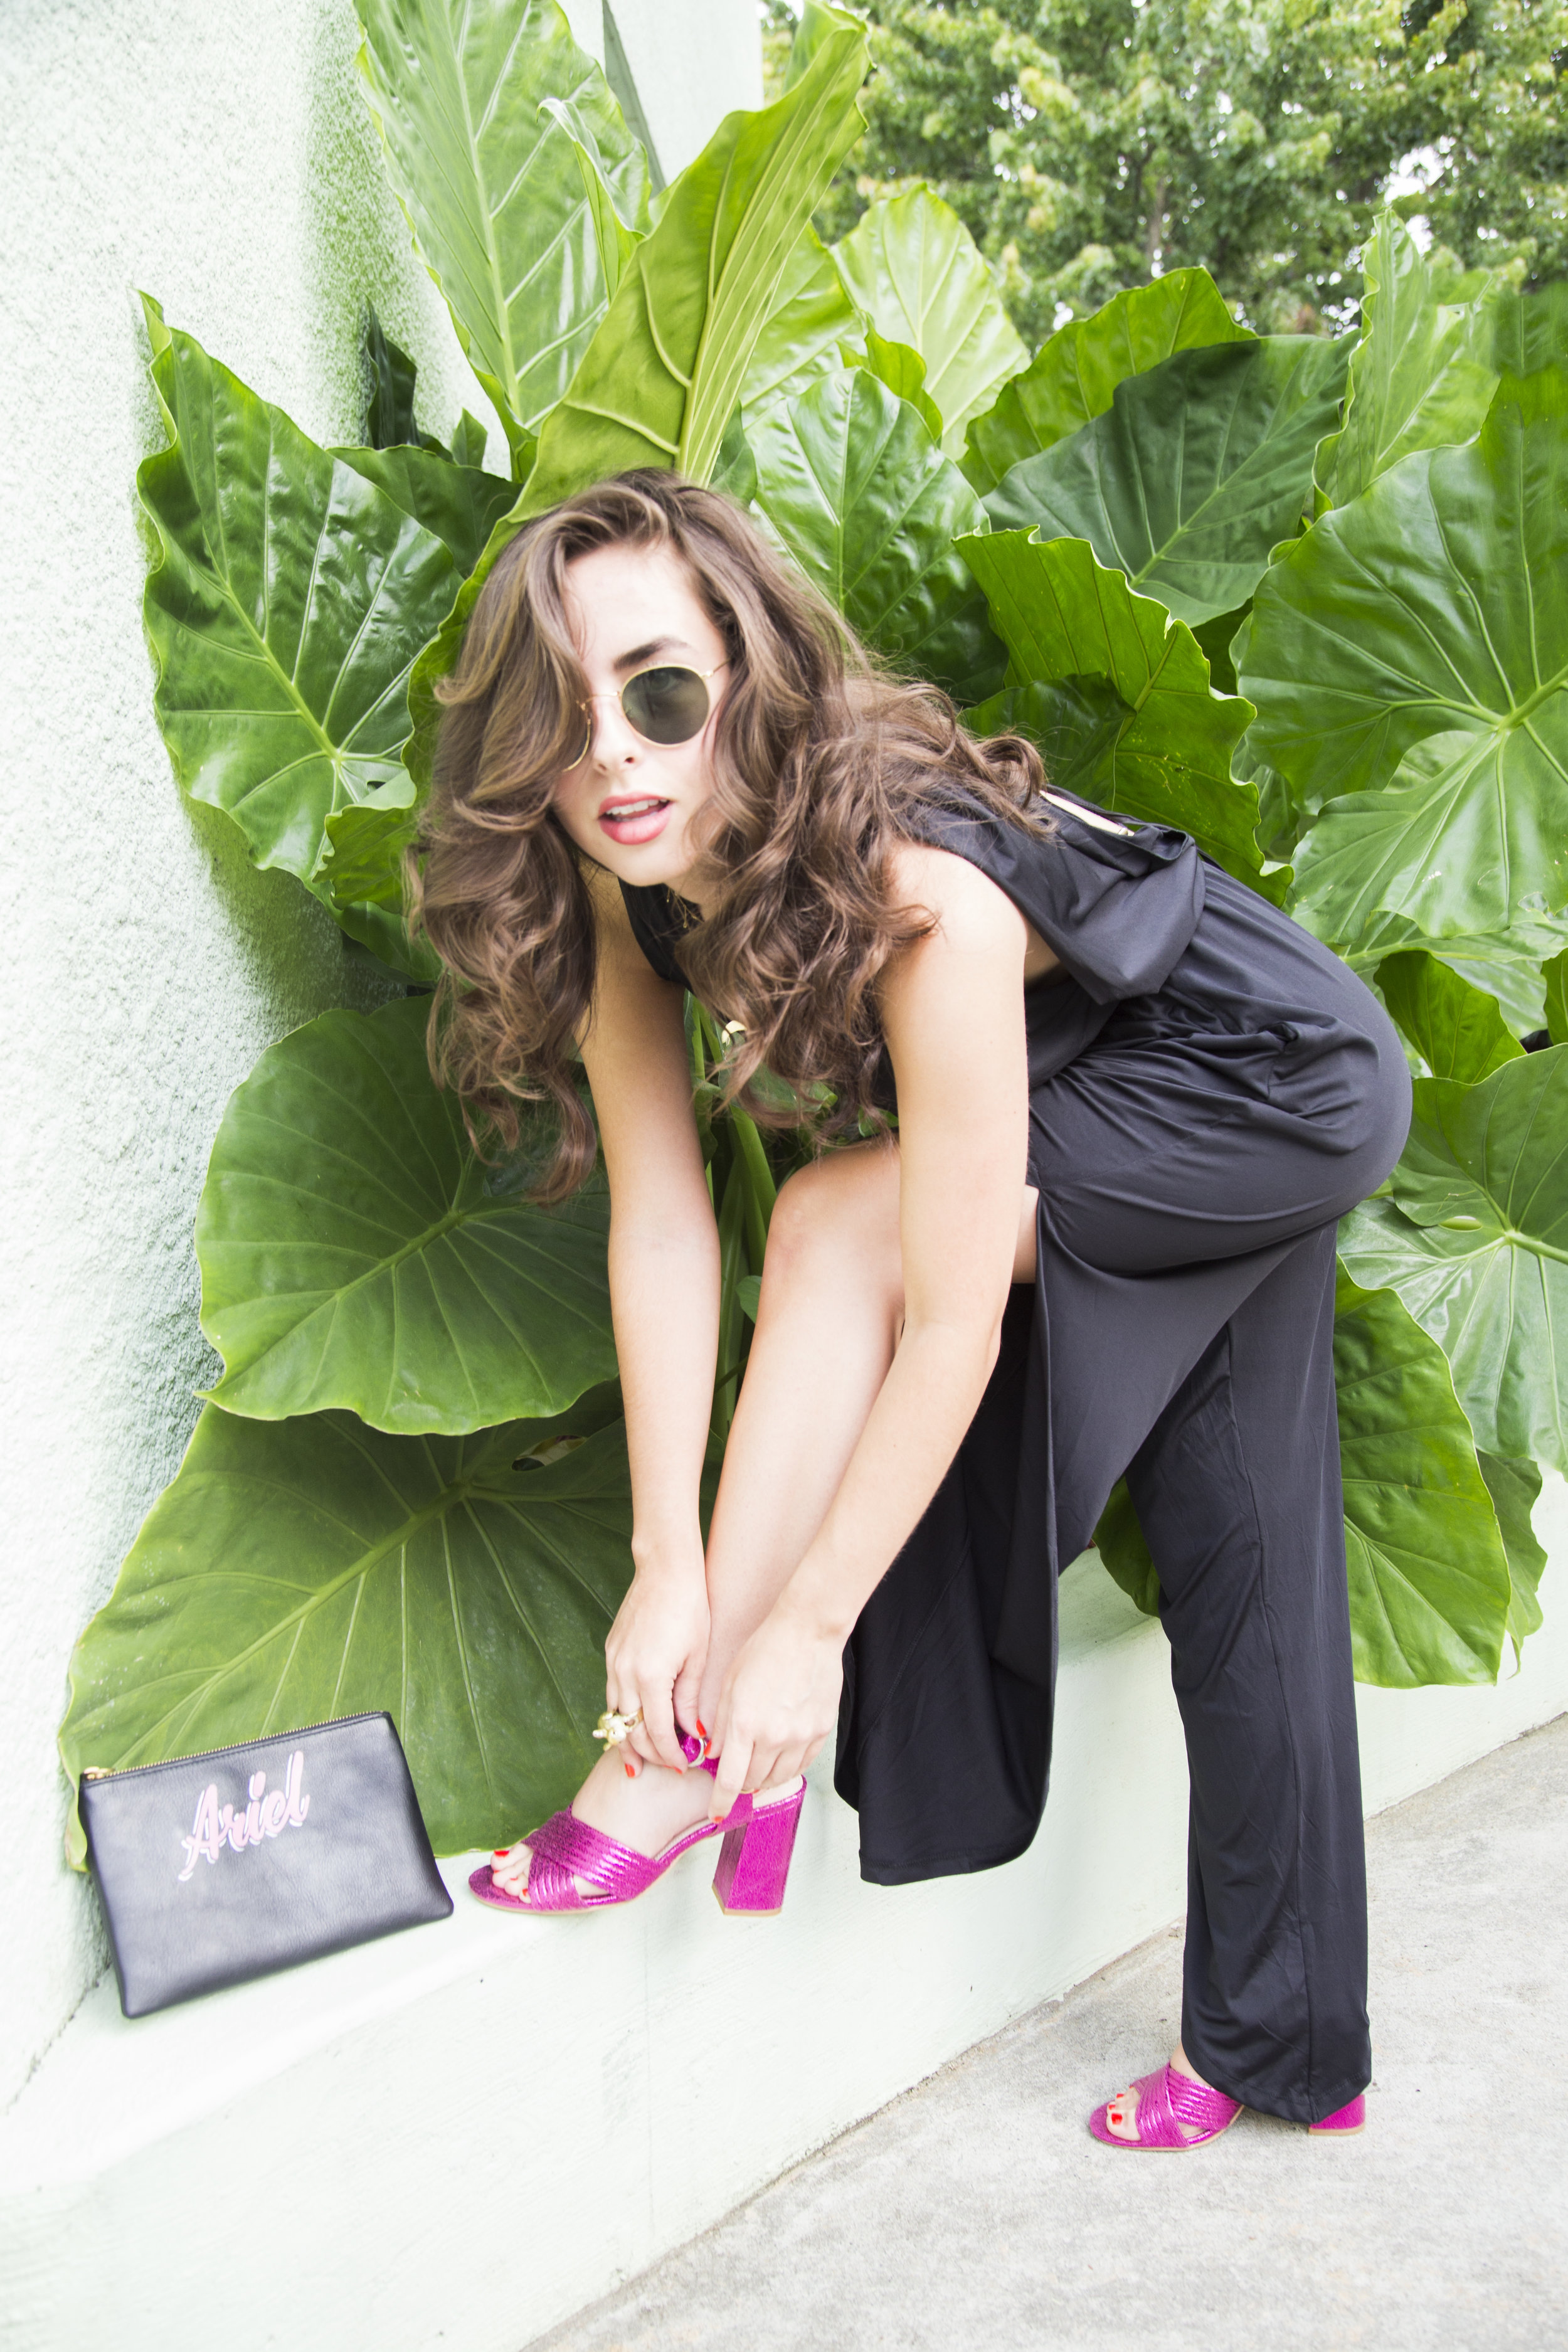 Jumpsuit:  Blush Boutique;  Half-moon necklace:  J & A Wares;  Shoes:  Topshop;  Clutch:  Madewell (personalized by B. Kaspr);  Sunglasses:  Rayban